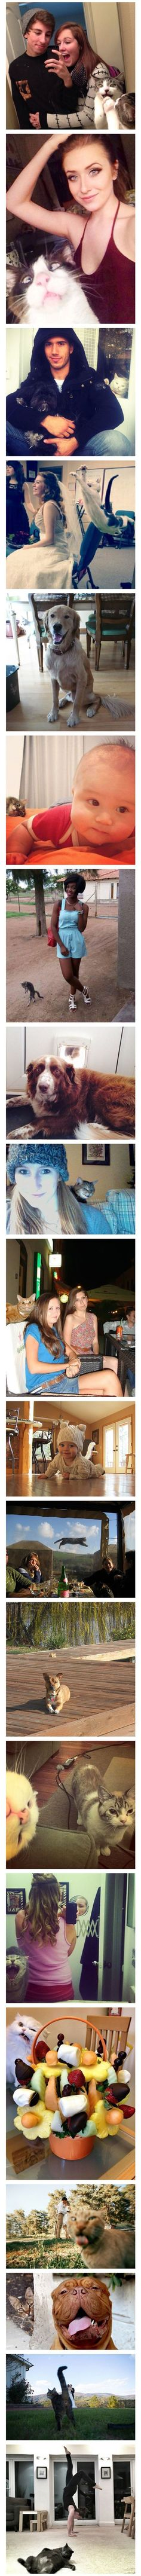 20 Funny Cat Photobombs To Make You Smile  MyFunnyPalace